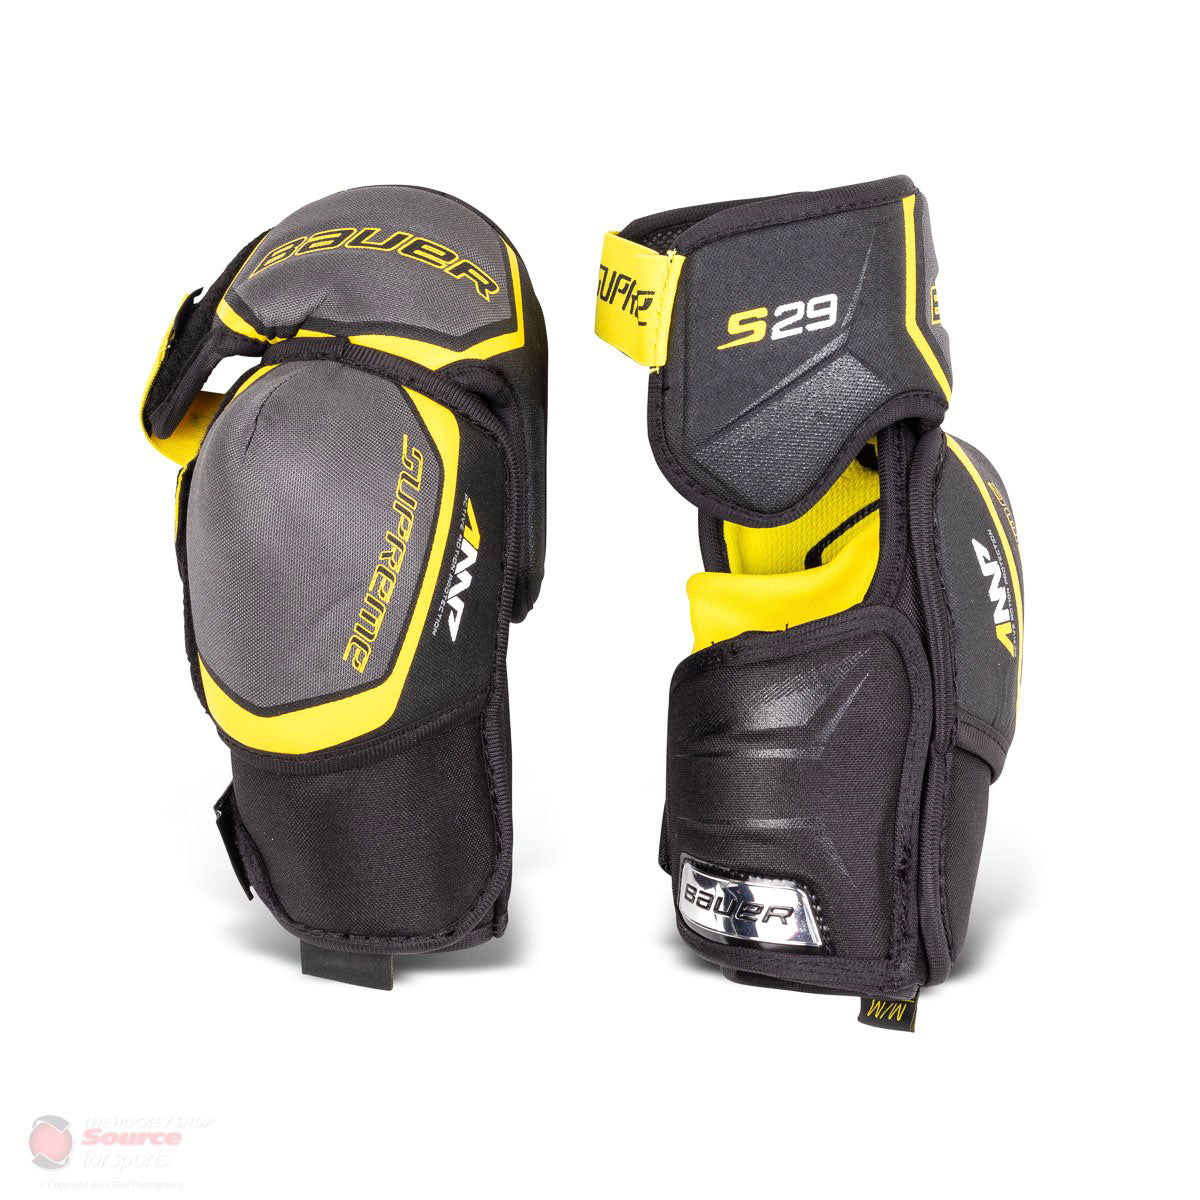 Bauer Supreme S29 Junior Hockey Elbow Pads